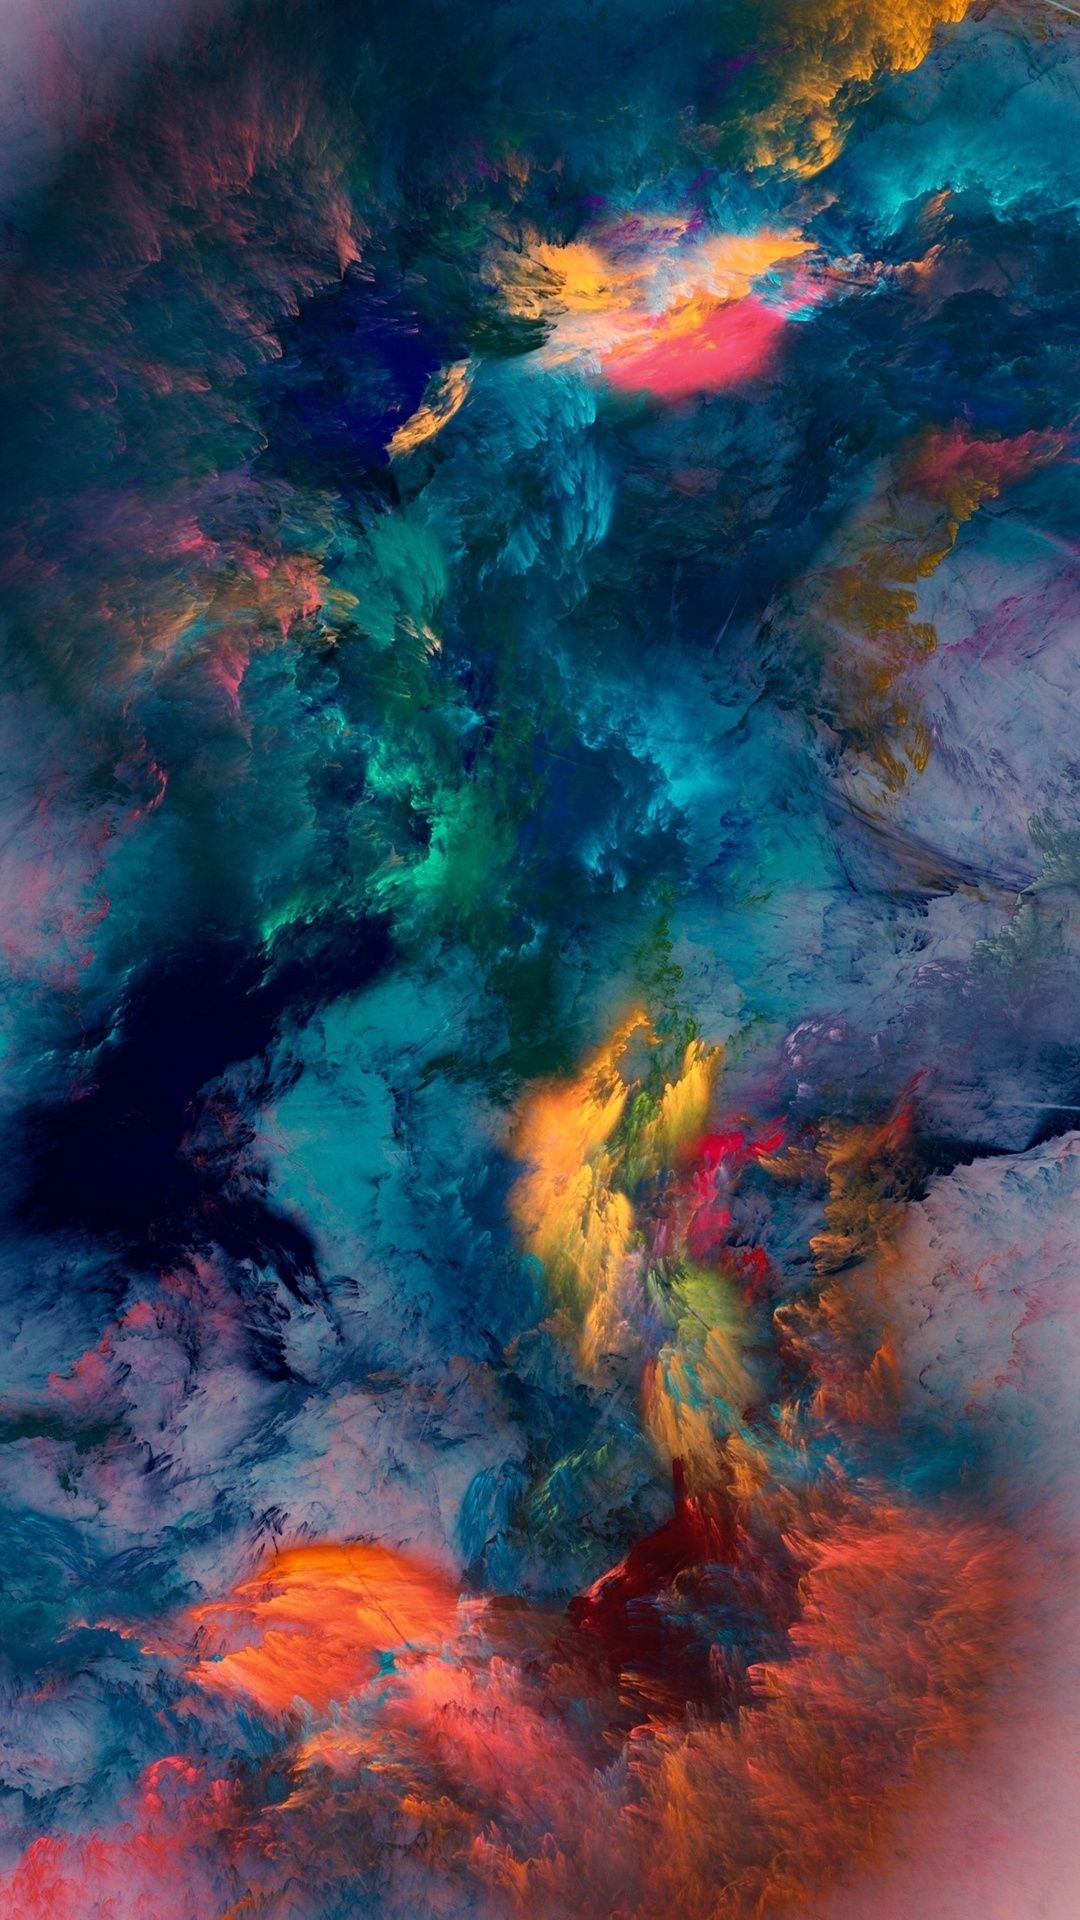 colour storm wallpaper | digital art | pinterest | wallpaper, storms